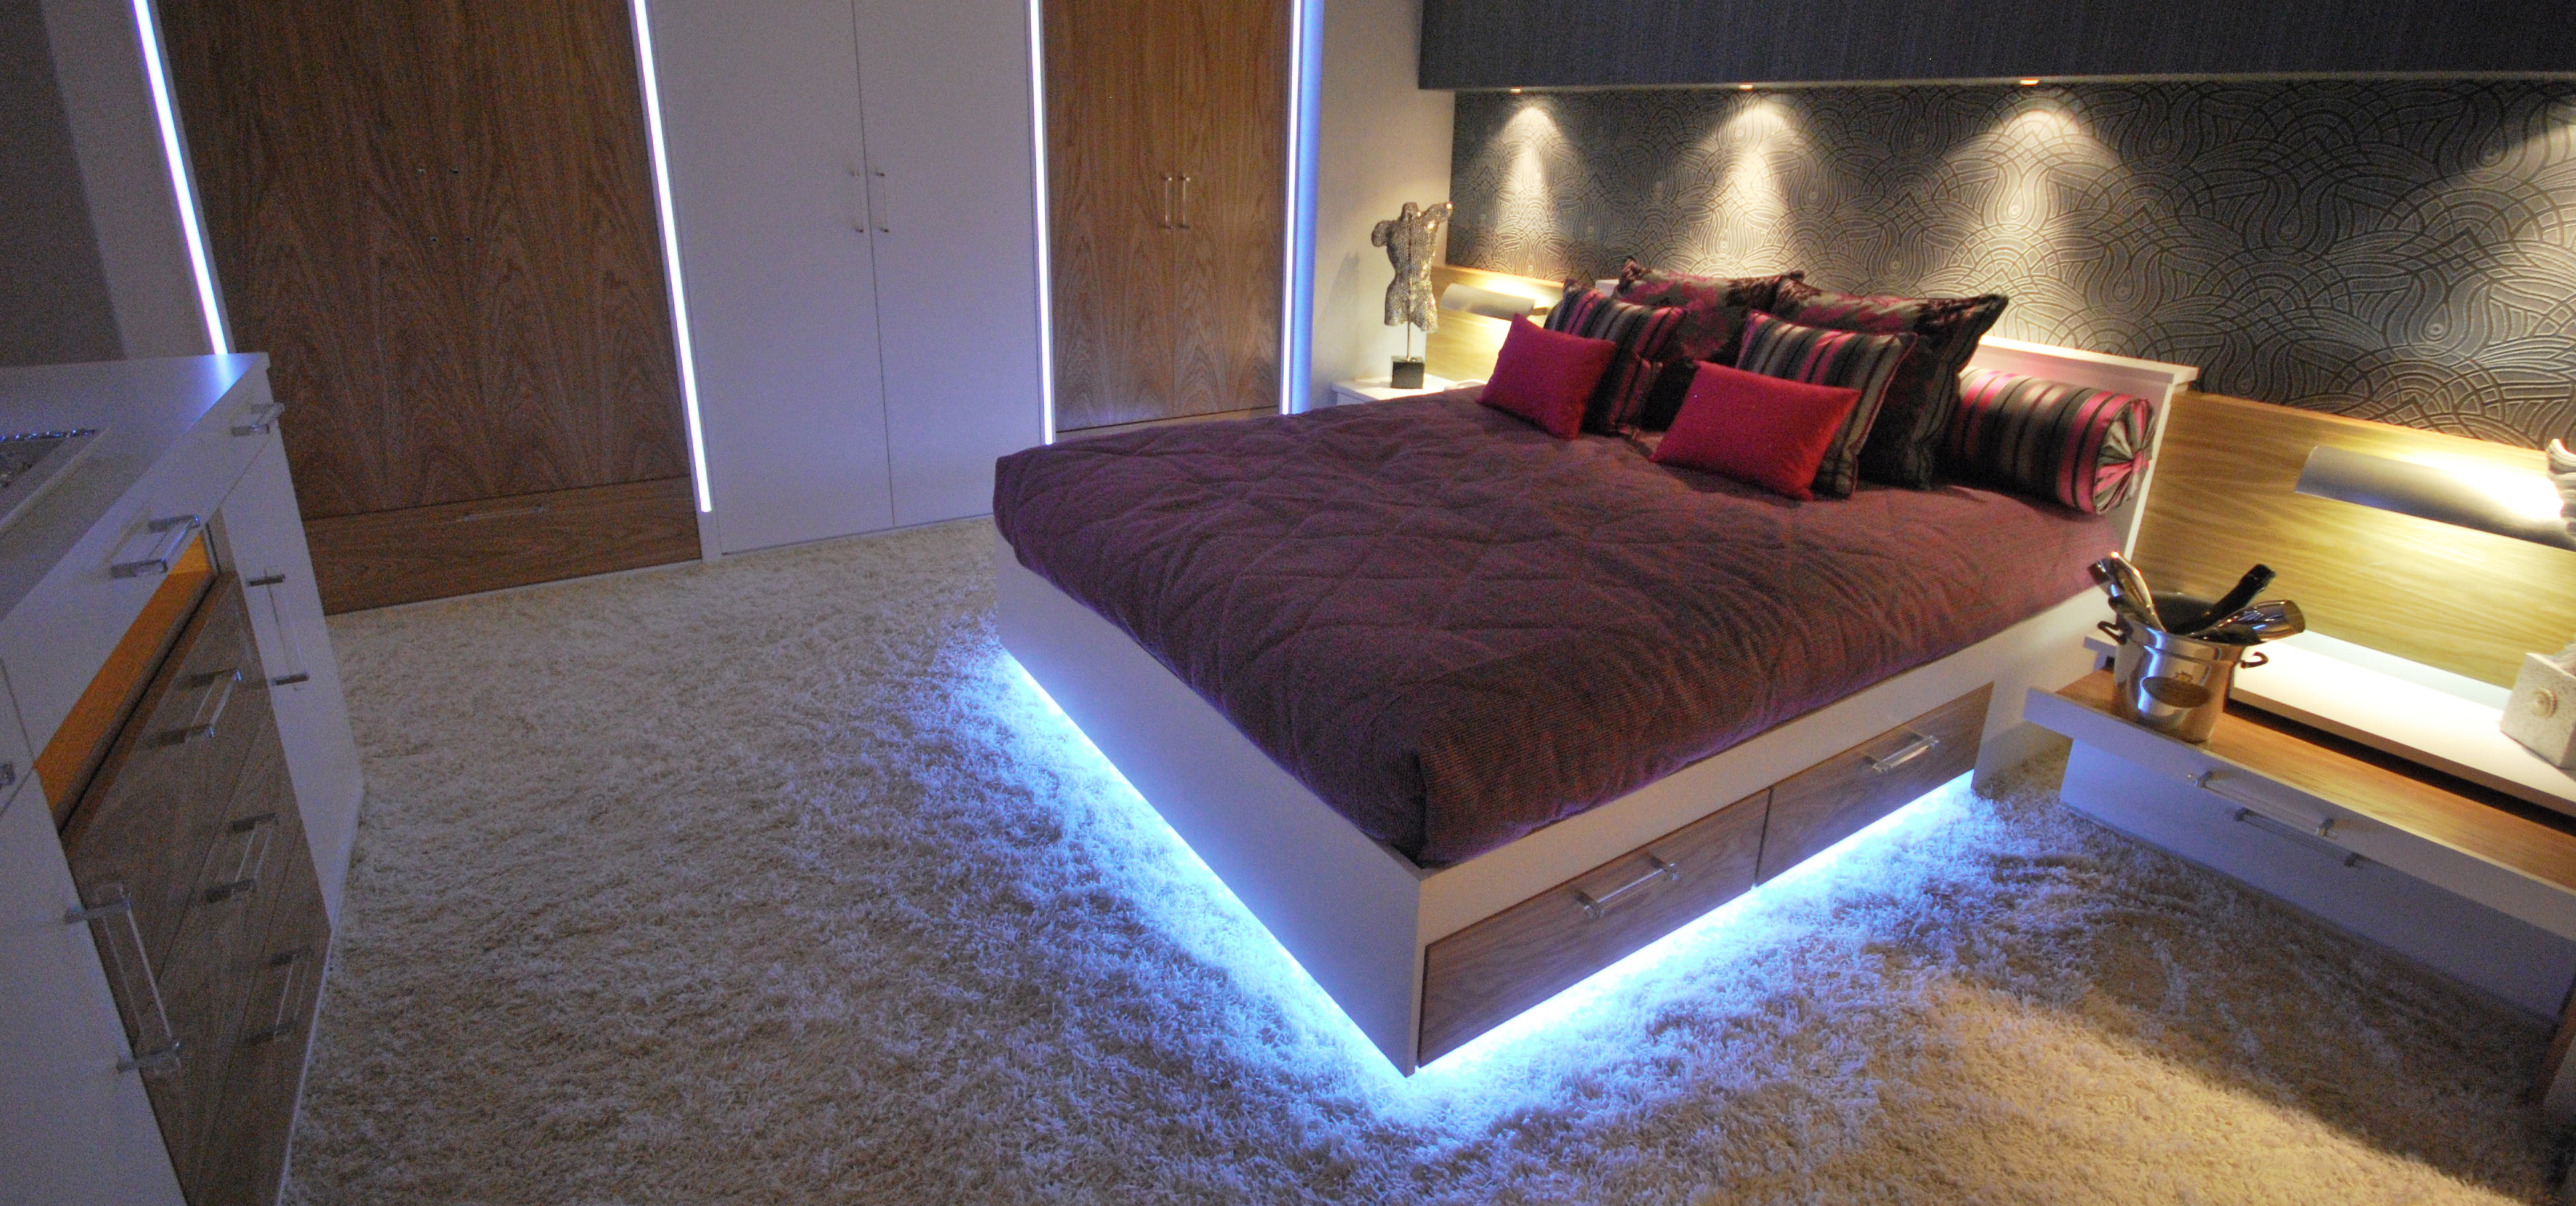 Light up bed with an overhead display and complimentary full wall wardrobe